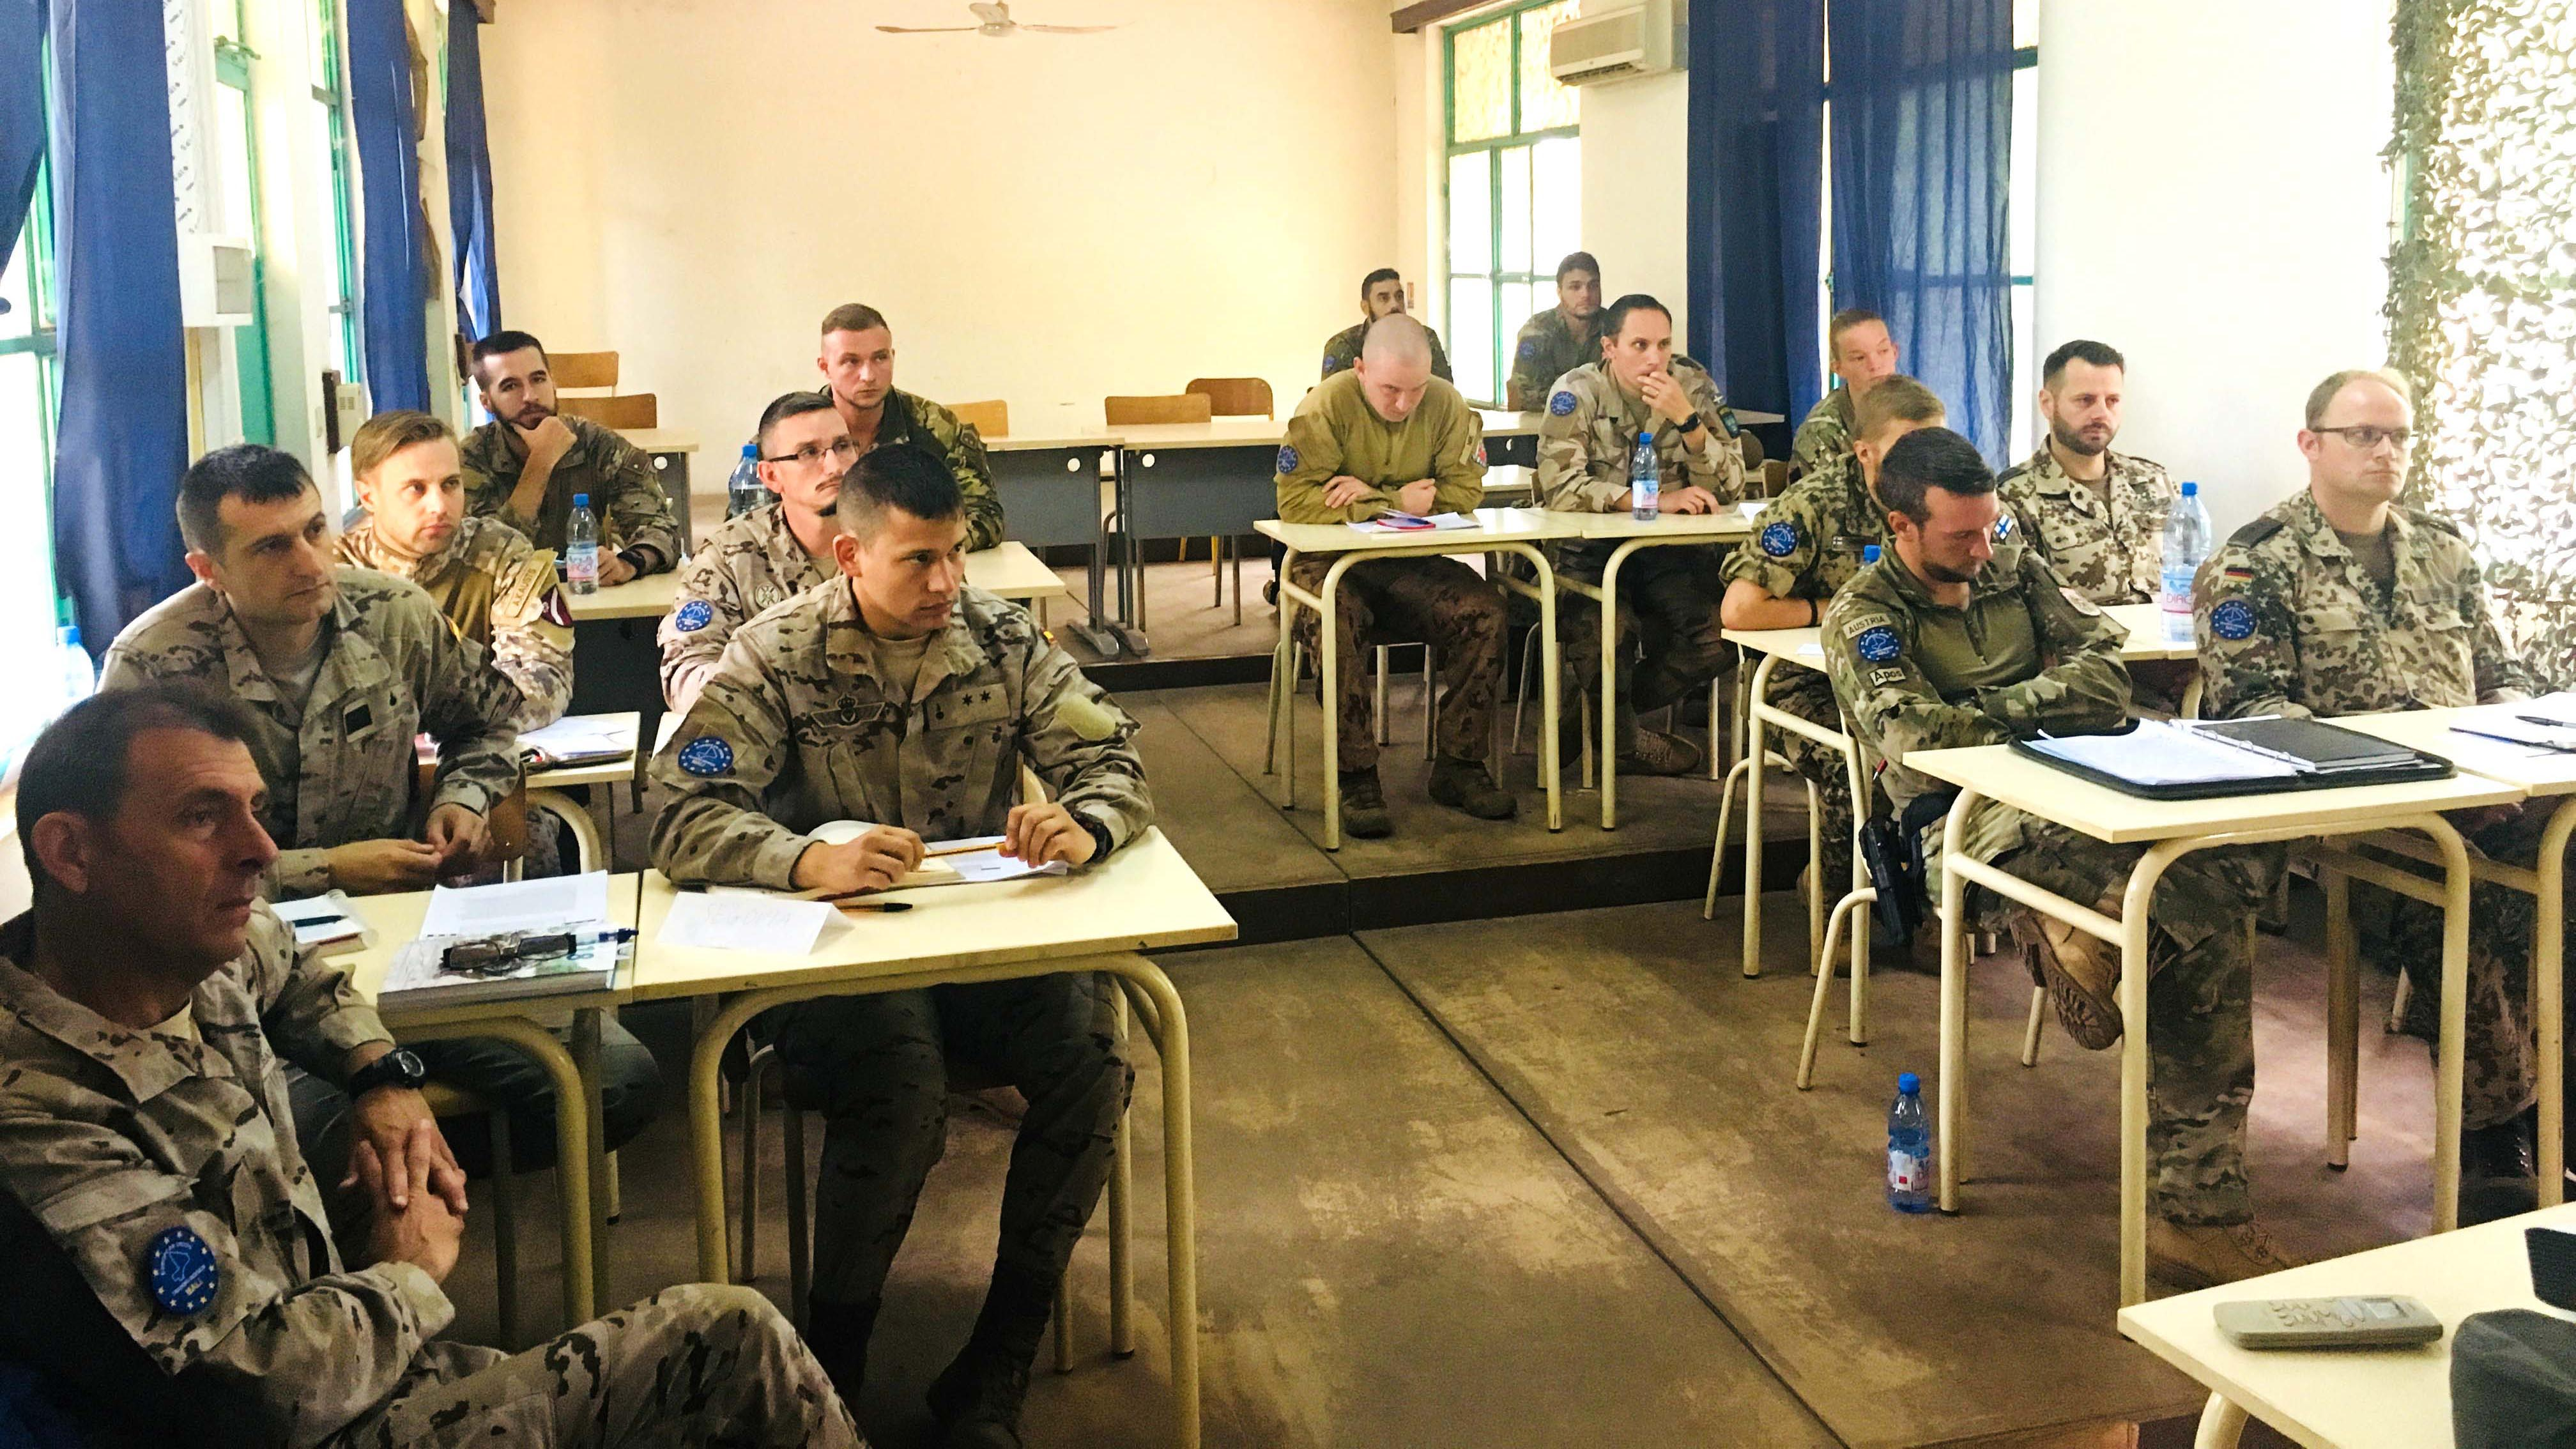 COURSE OF INTERNATIONAL HUMANITARIAN LAW